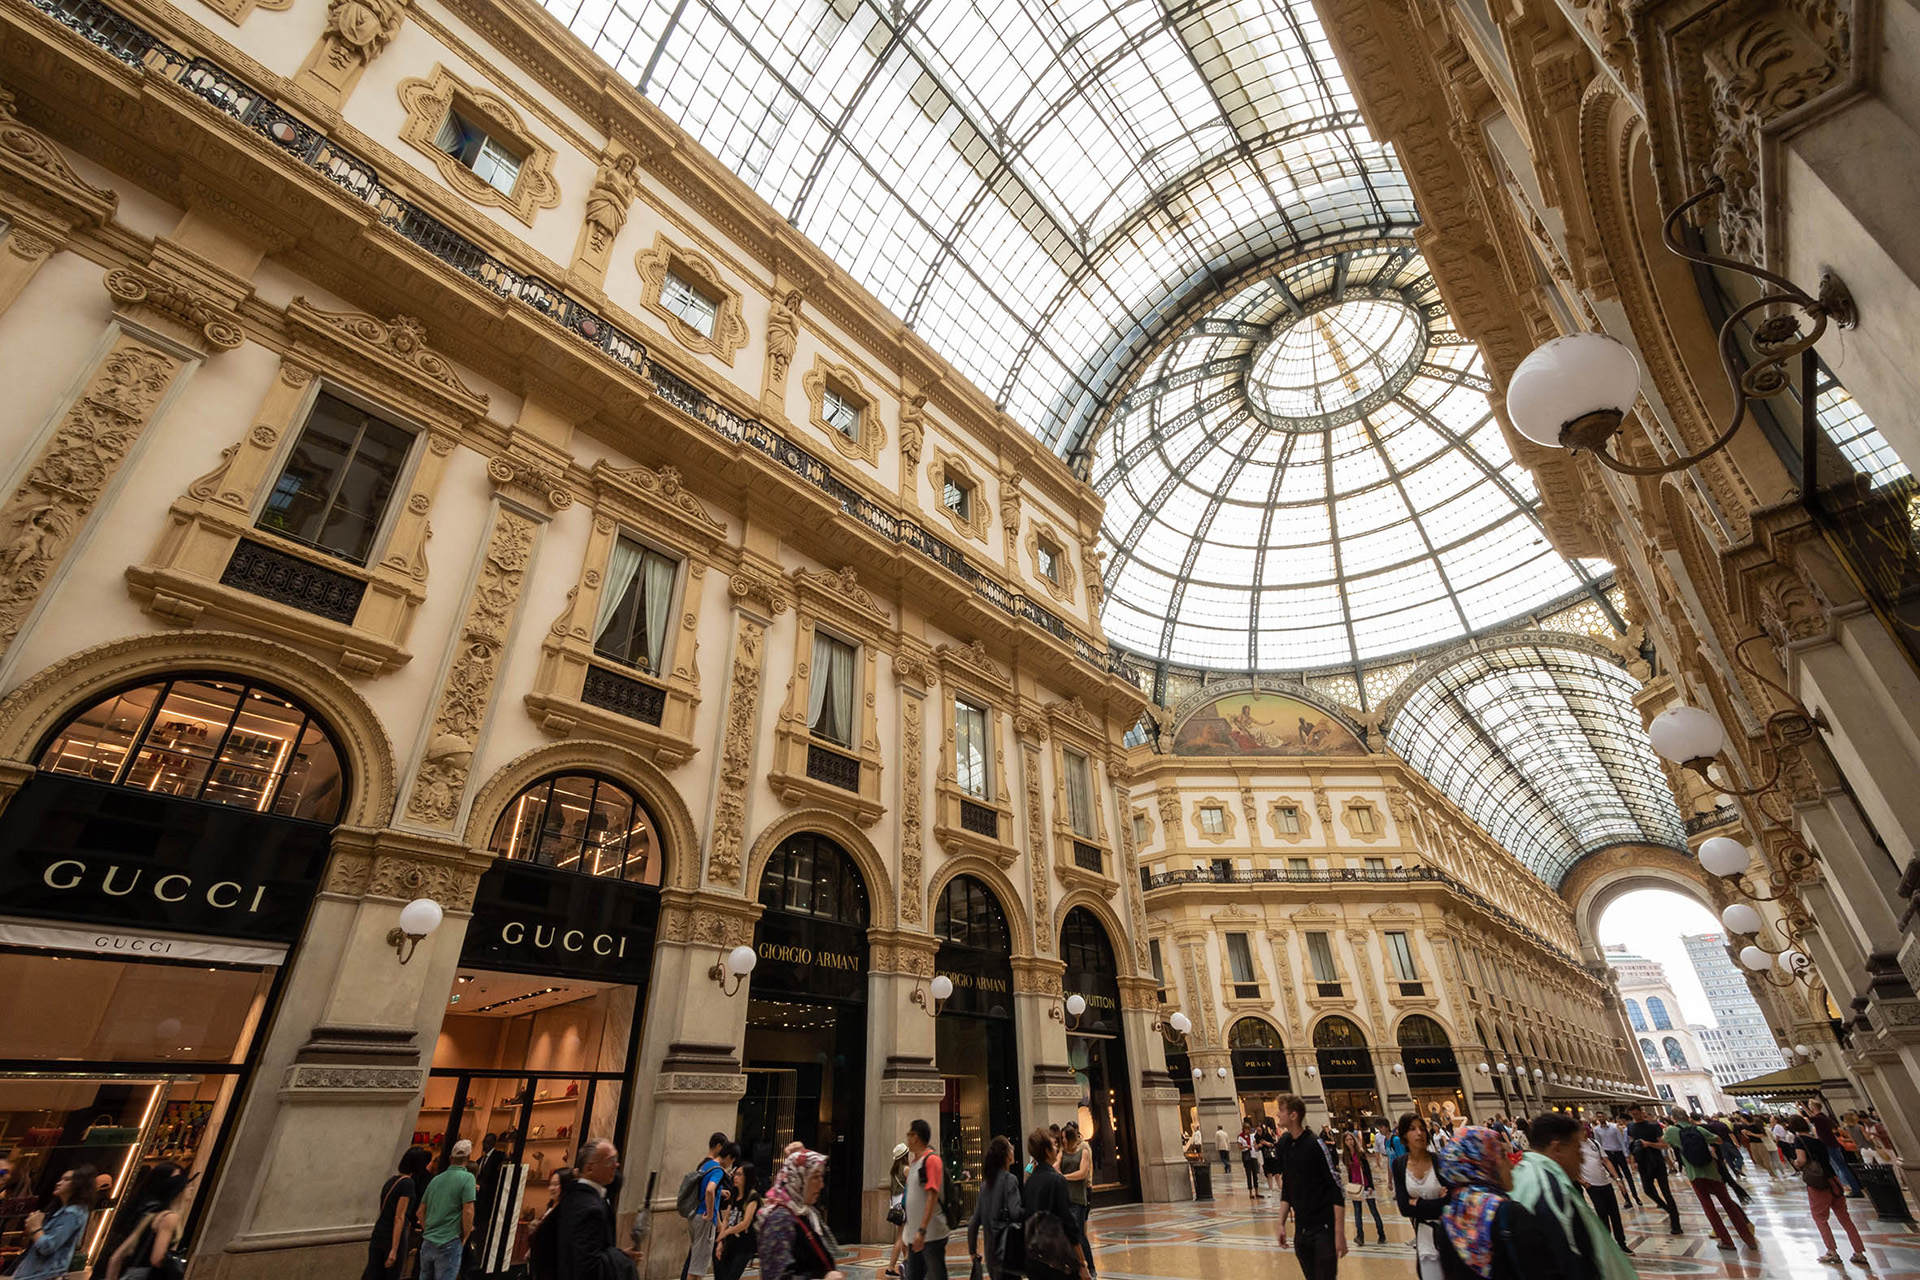 The 1877 Vittorio Emanuele II shopping arcade, now a temple to high fashion